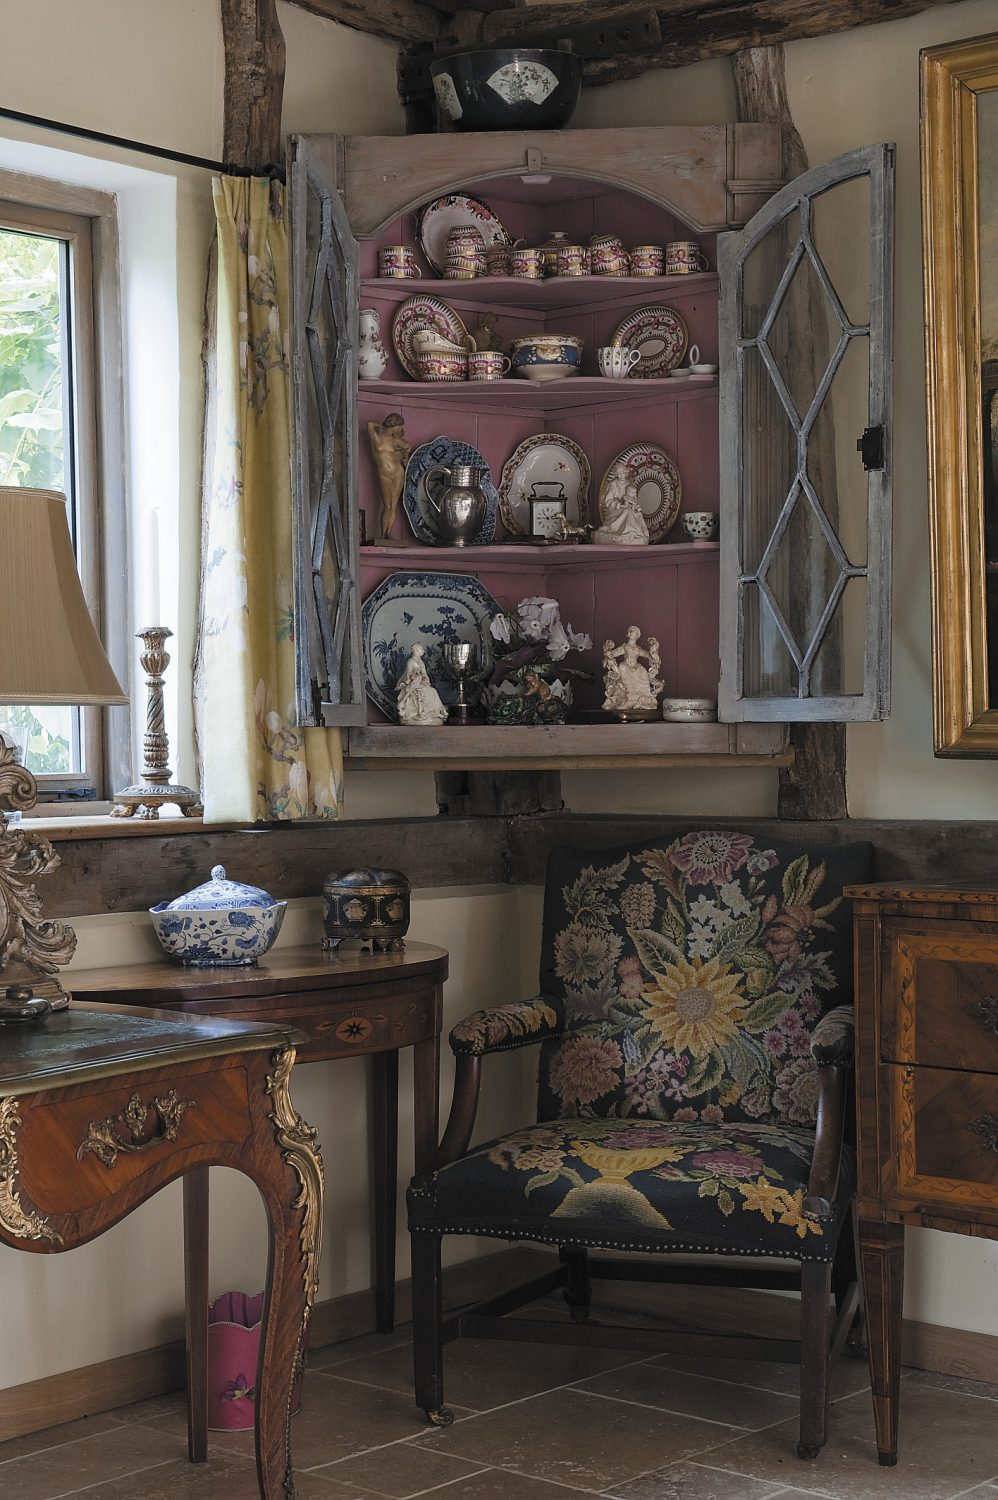 the barn is furnished largely with beautiful possessions much loved through the centuries